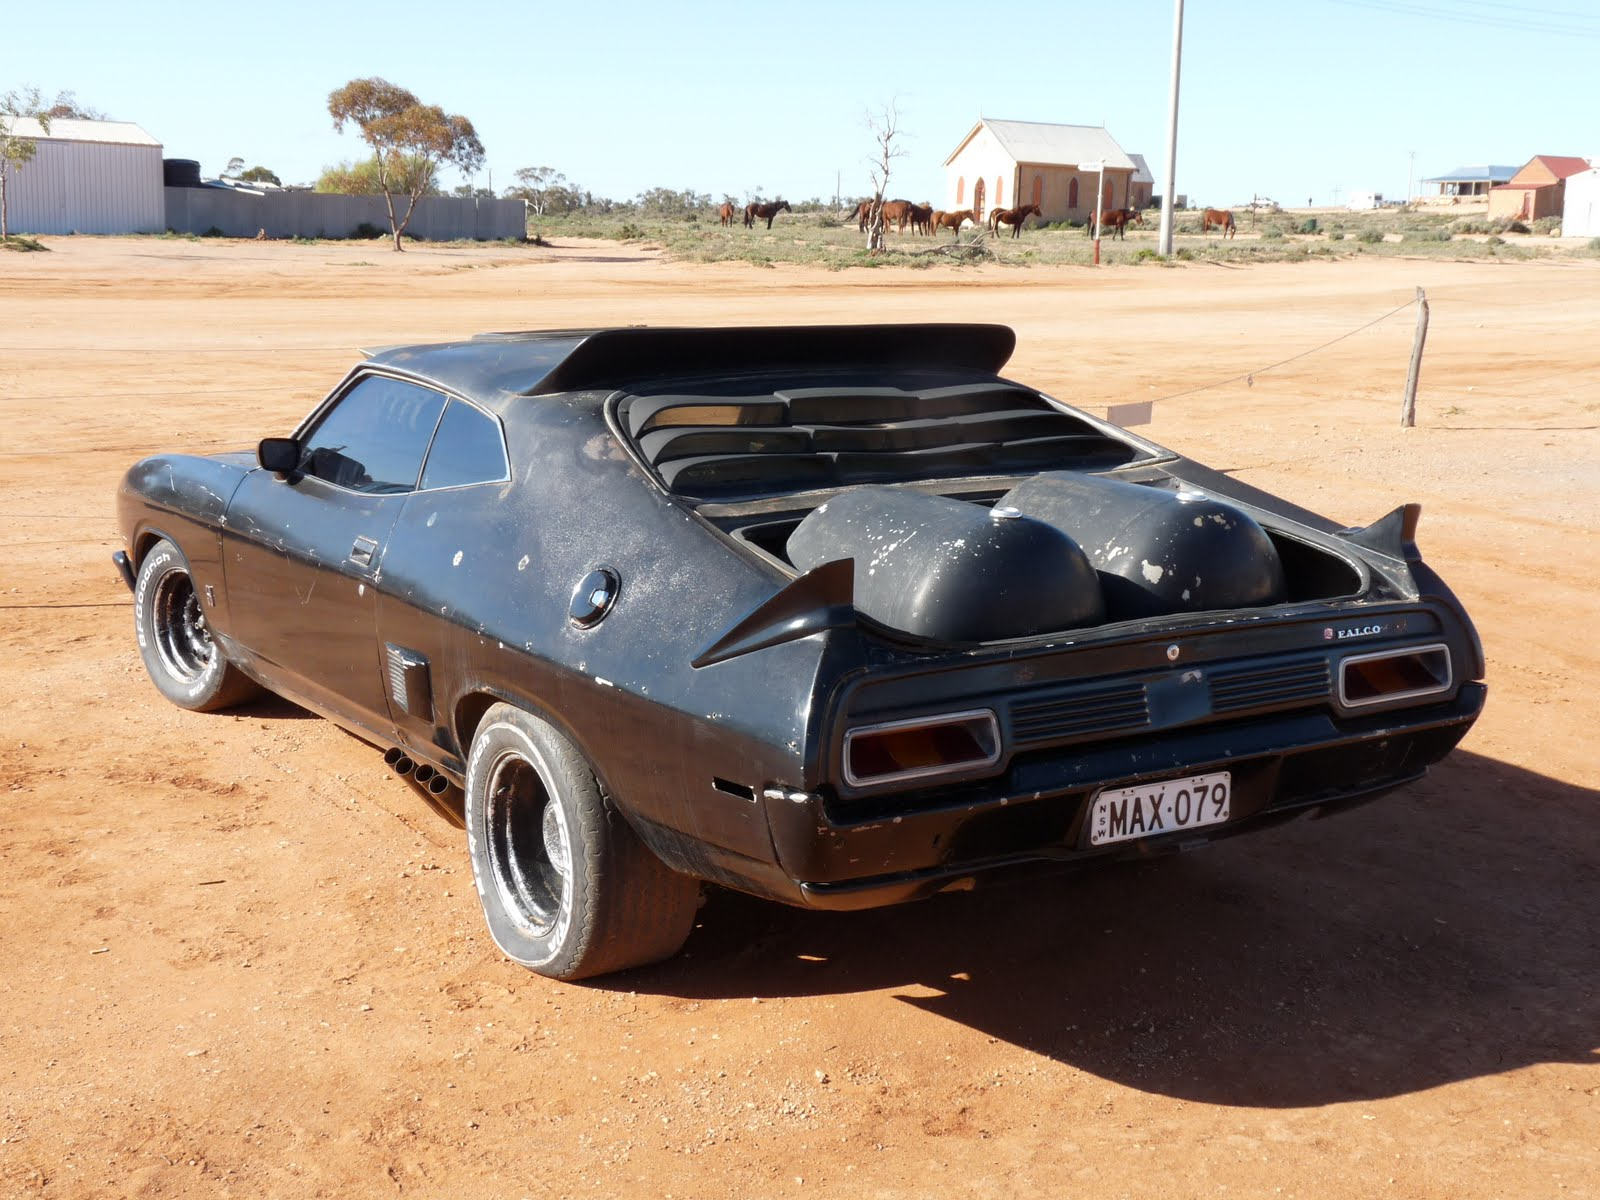 garry and rani appleby mad max pursuit vehicle sliverton nsw. Black Bedroom Furniture Sets. Home Design Ideas